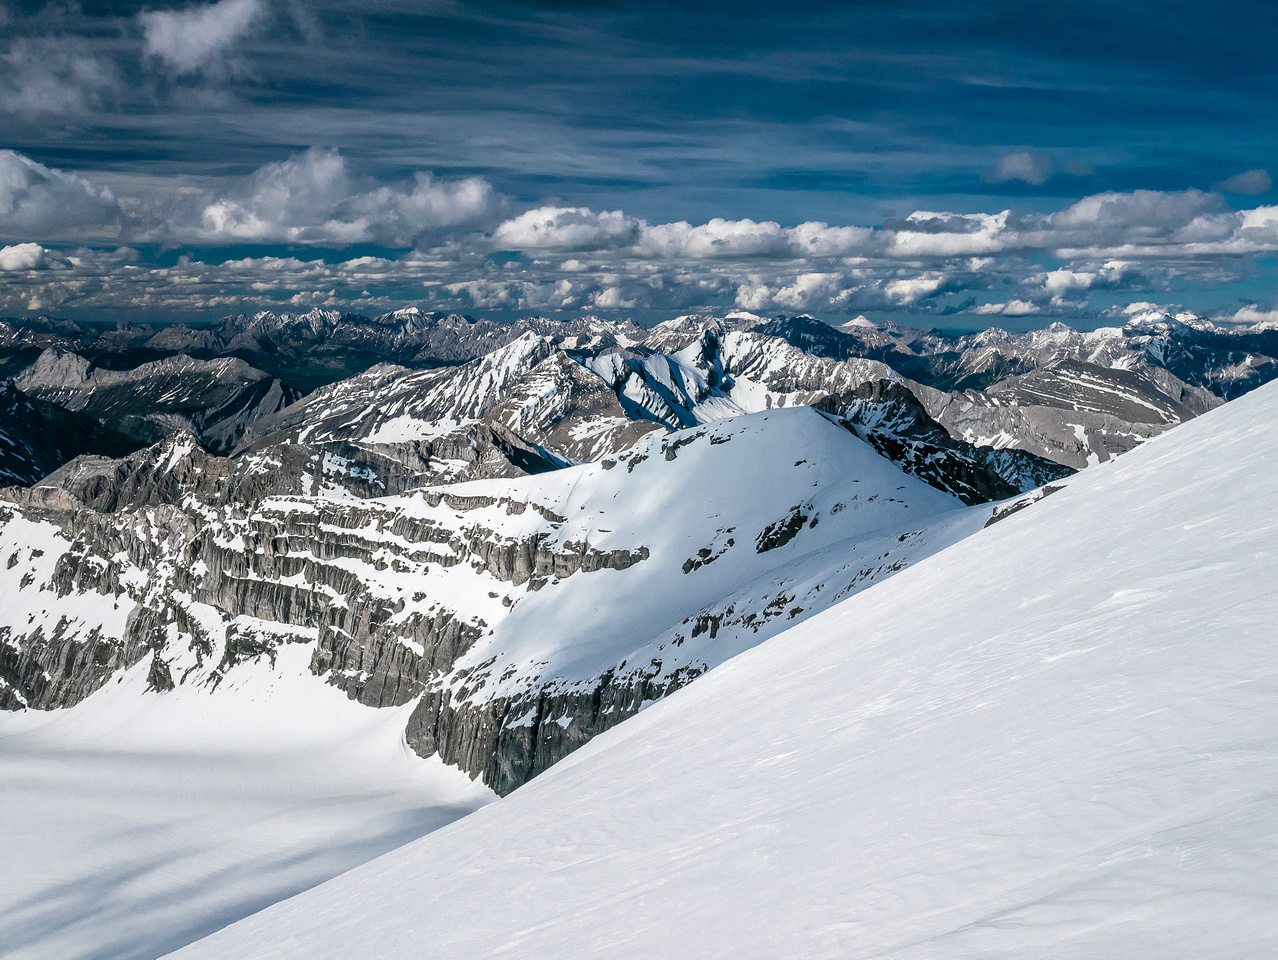 Looking over the false summit and north ridge. The snow gully at lower left of center must be the optional route when the north face is too icy.